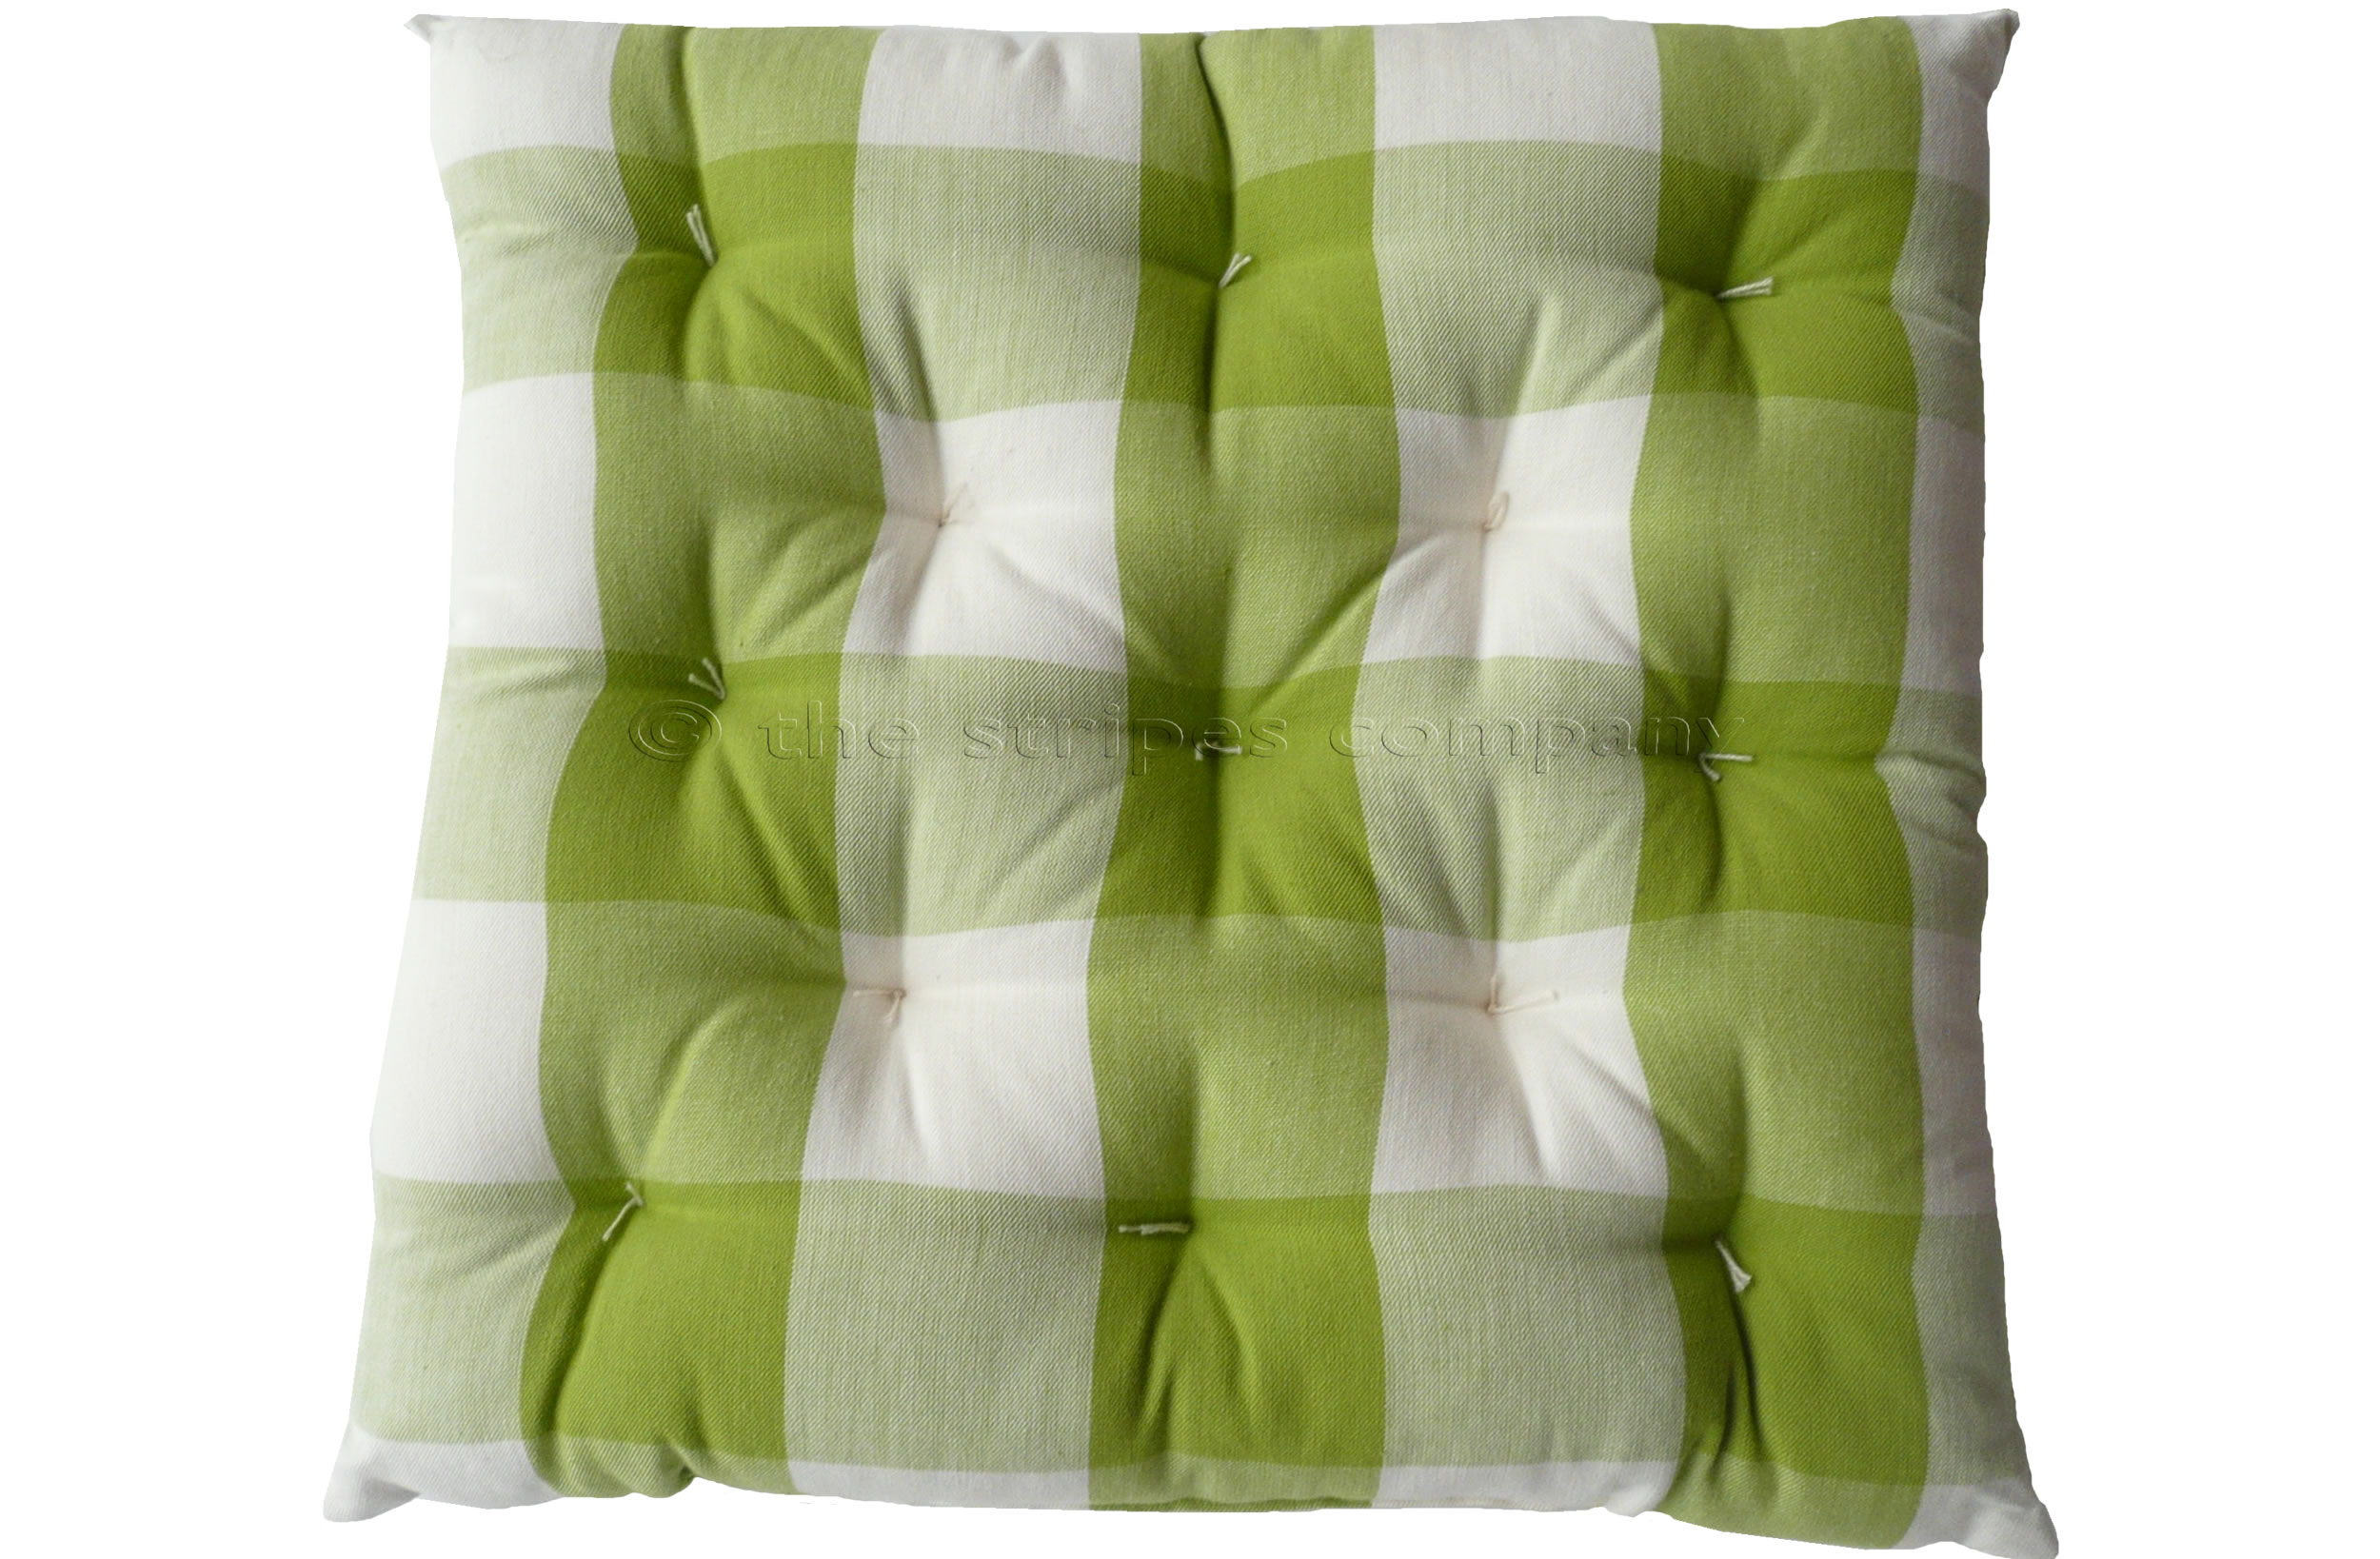 Gingham Seat Pads | Green and White Large Check Chair Cushions | Vichy Check Seat Pads